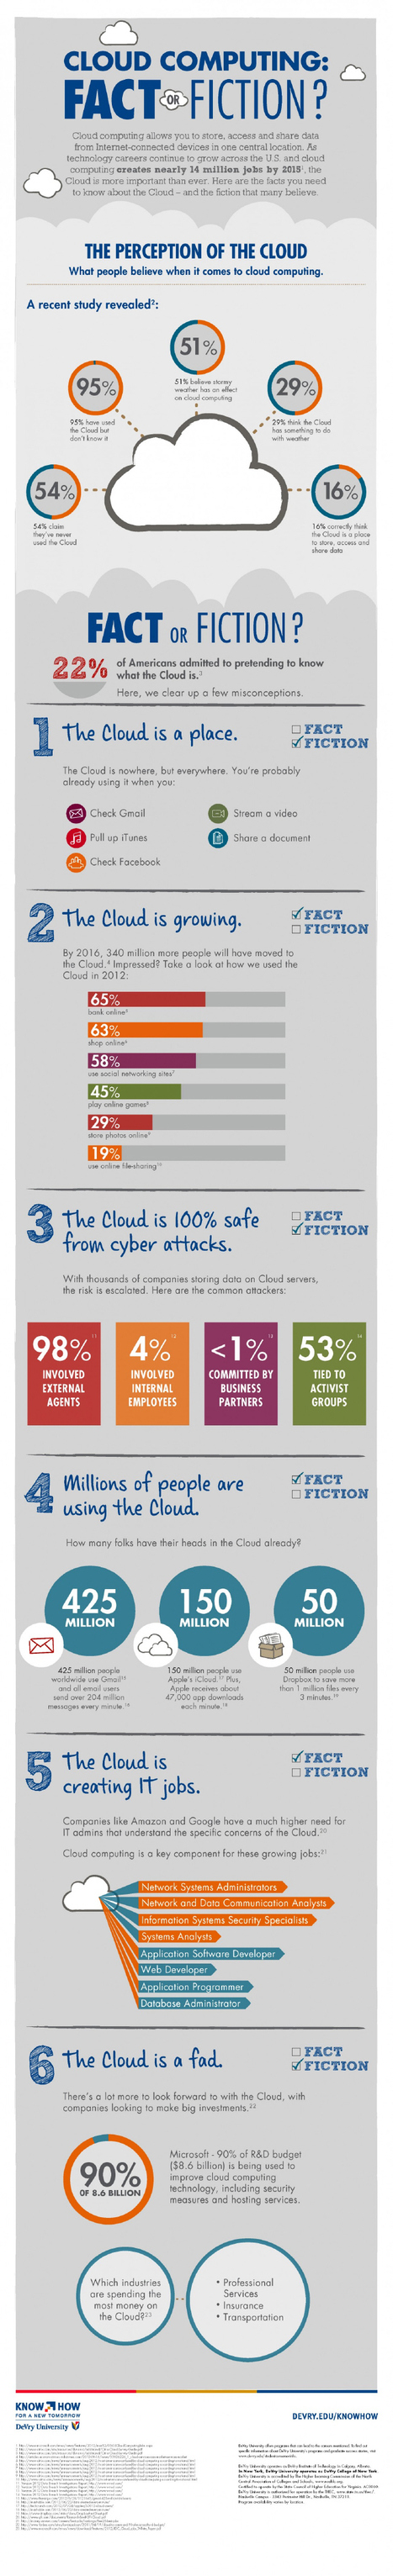 INFOGRAPHIC: Cloud computing! Fact or fiction? | Cloud Central | Scoop.it